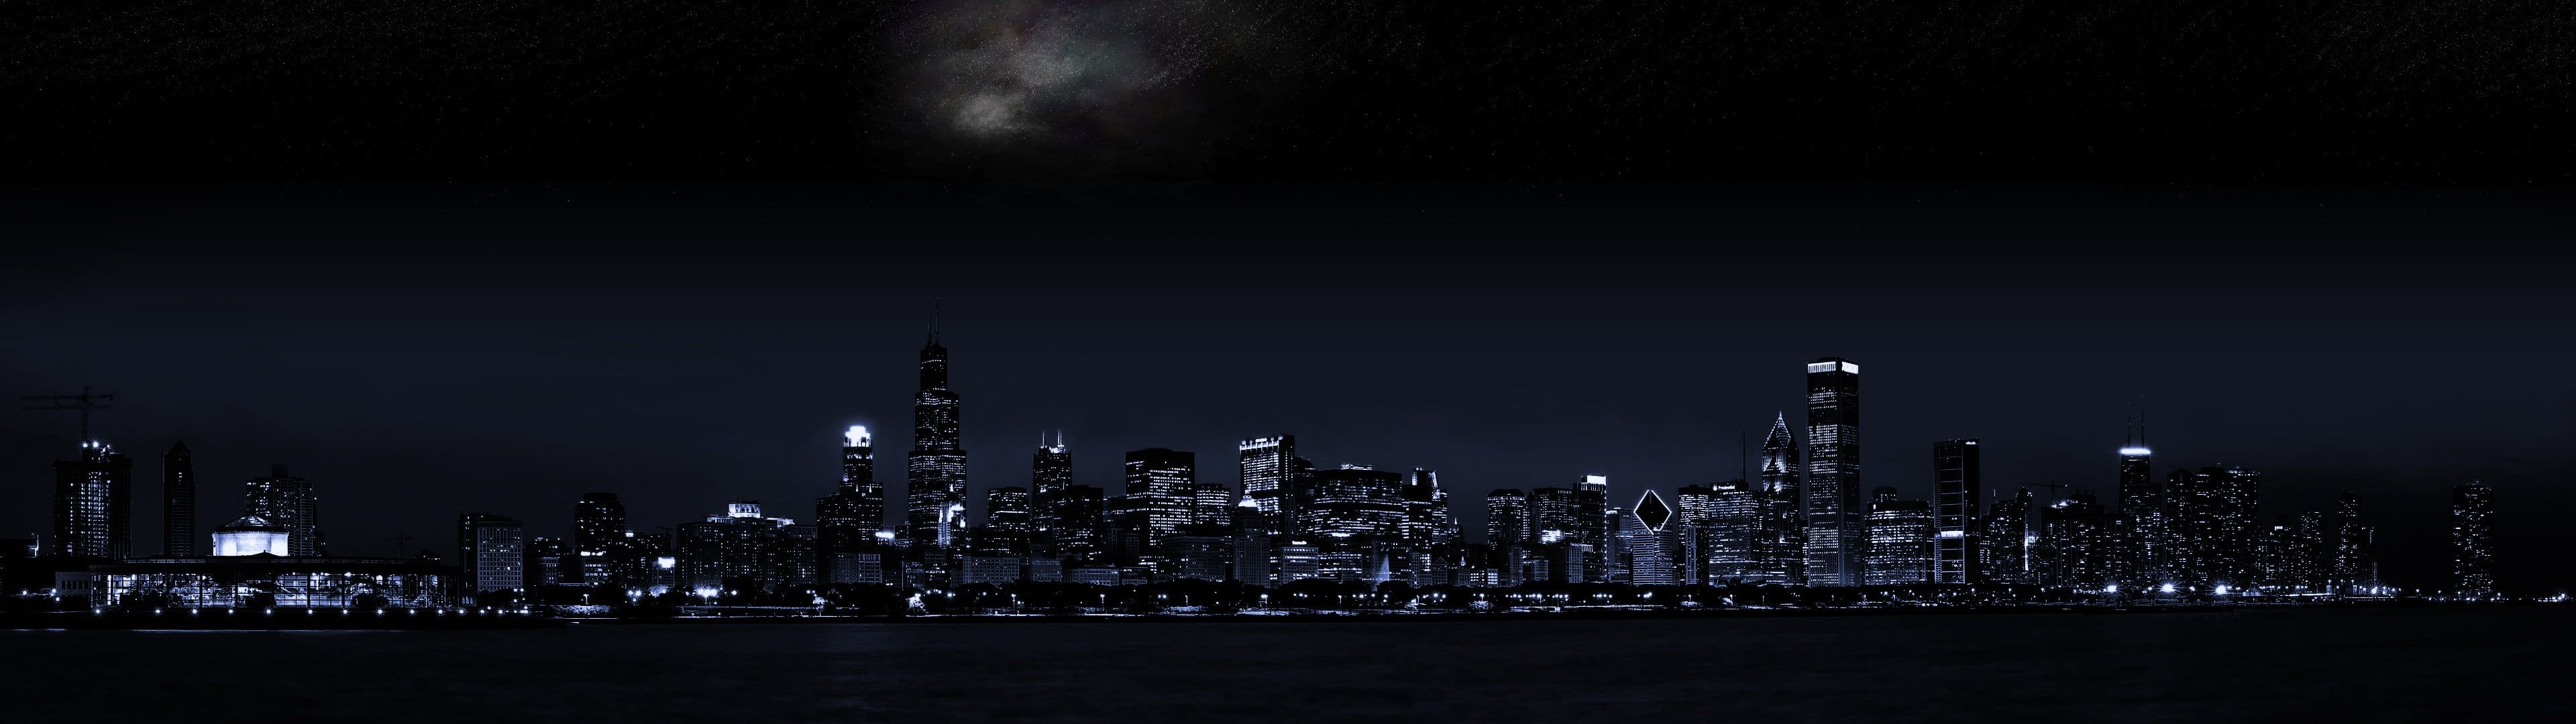 City Buildings City View At Night Time City Dark Cityscape Night 4k Wallpaper Hdwallpaper Dual Screen Wallpaper Dual Monitor Wallpaper City Wallpaper